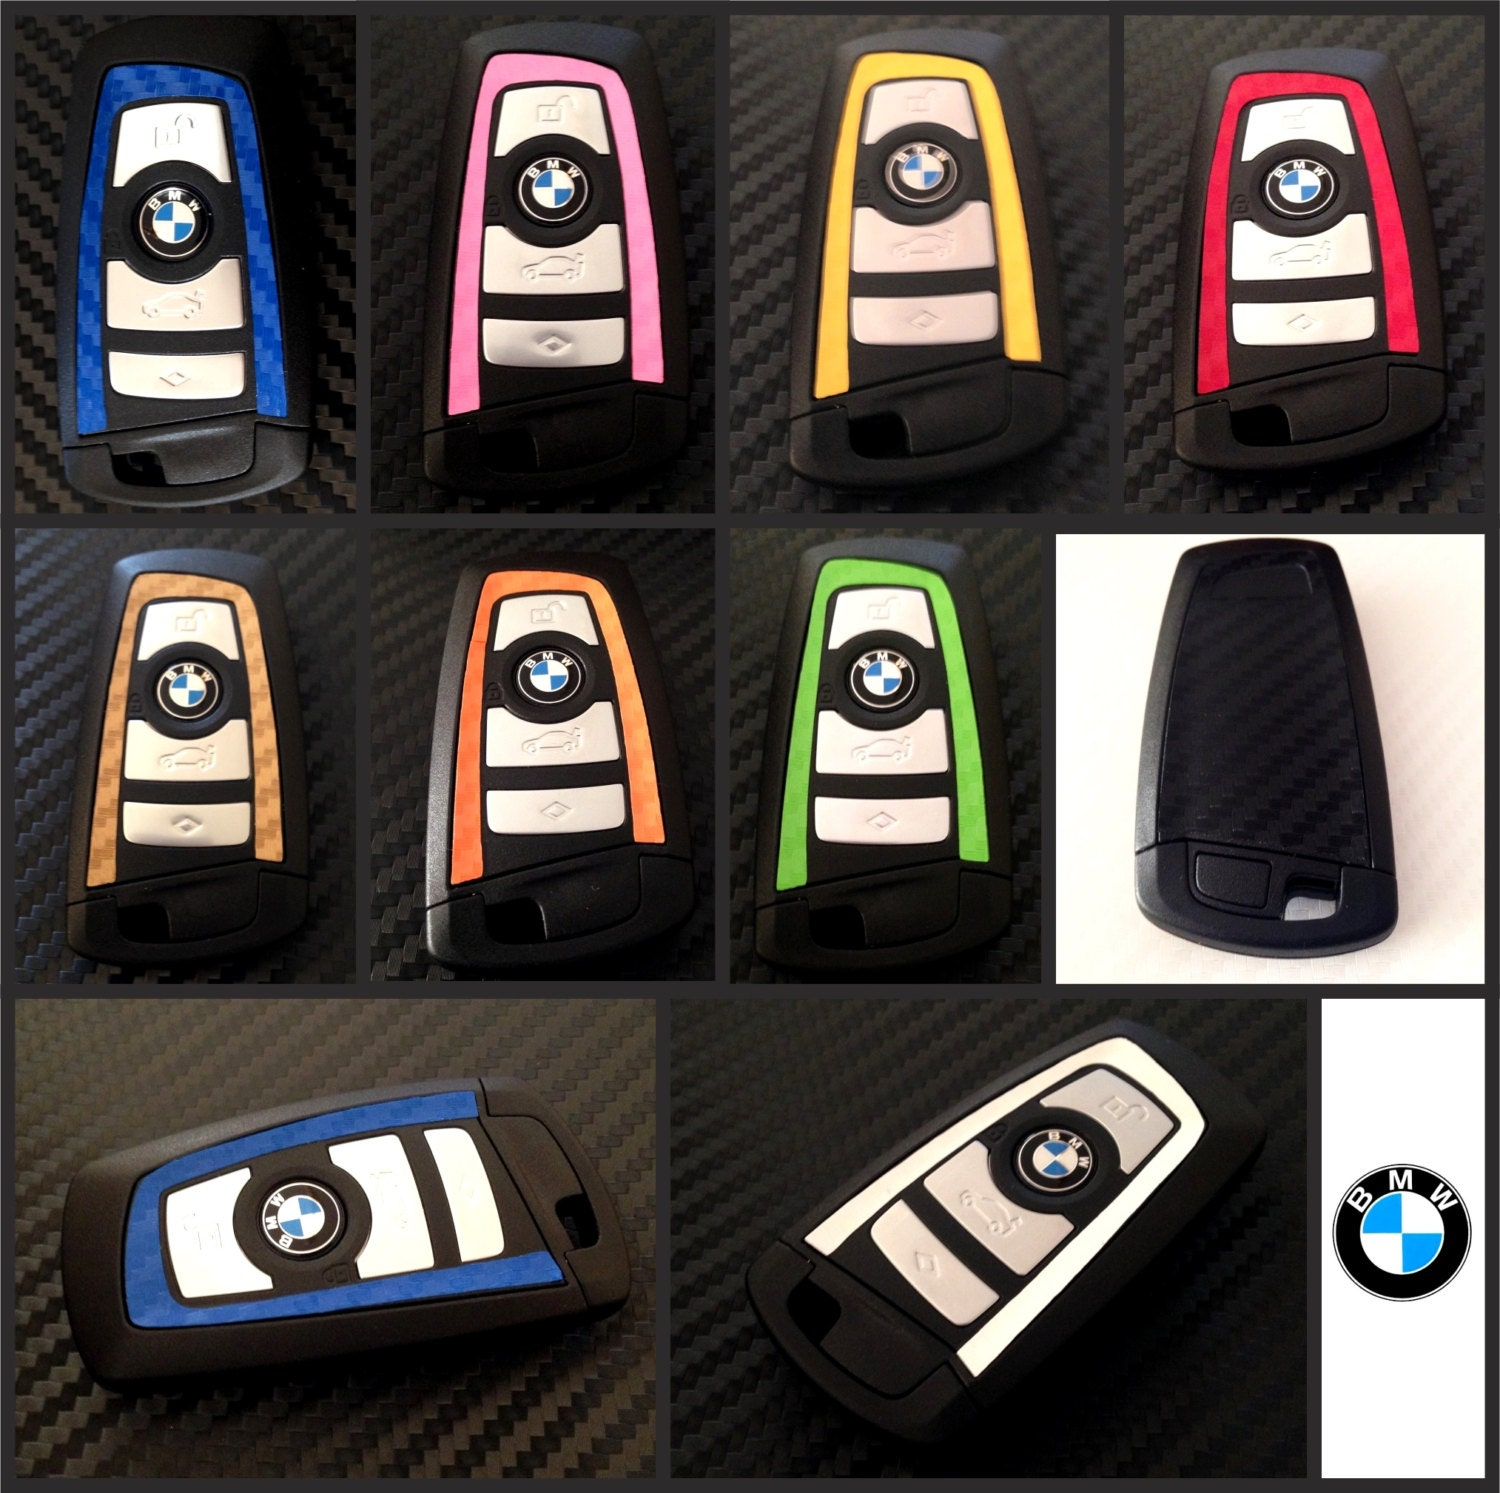 jpg commons bmw keyfob wiki file usb wikimedia